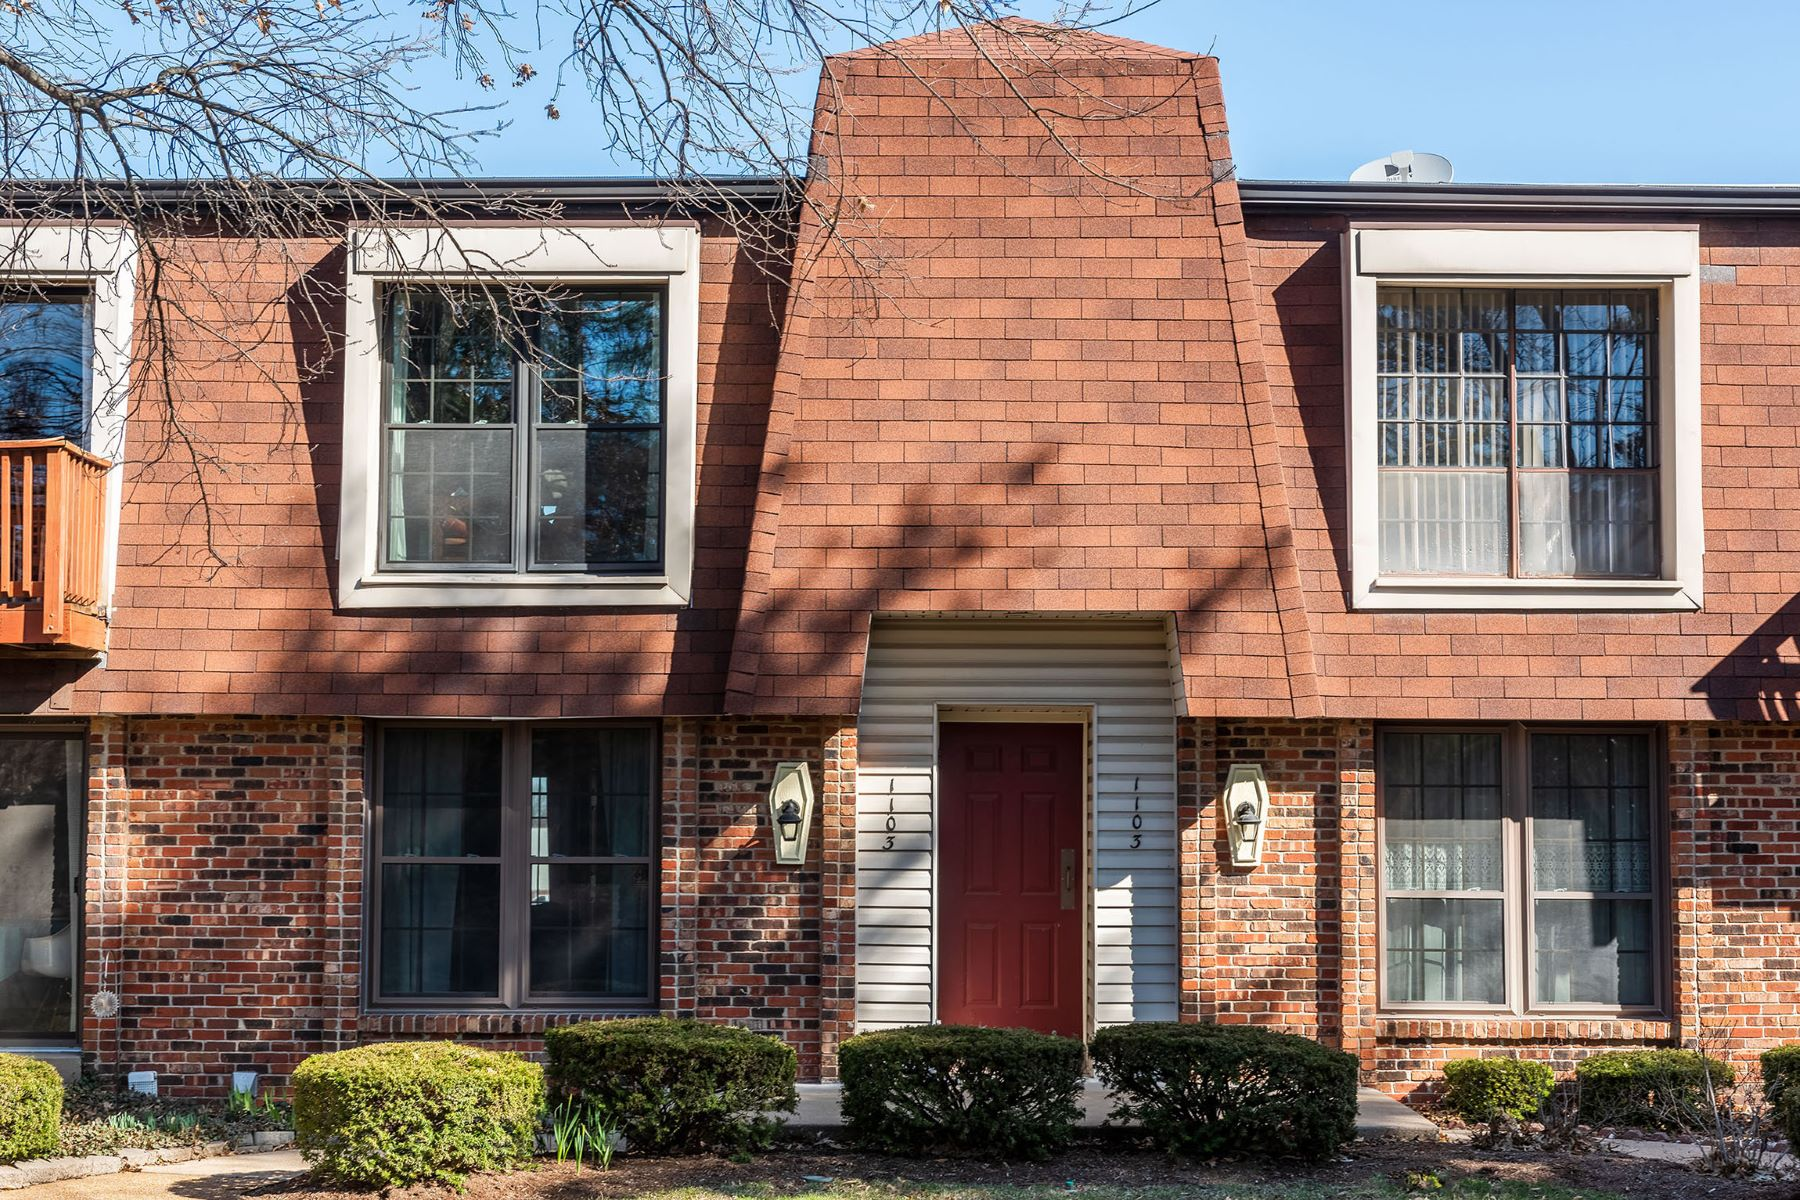 Condominium for Sale at 1103 Appleseed Lane, #A, Olivette, MO 63132 1103 Appleseed Lane, #A Olivette, Missouri 63132 United States